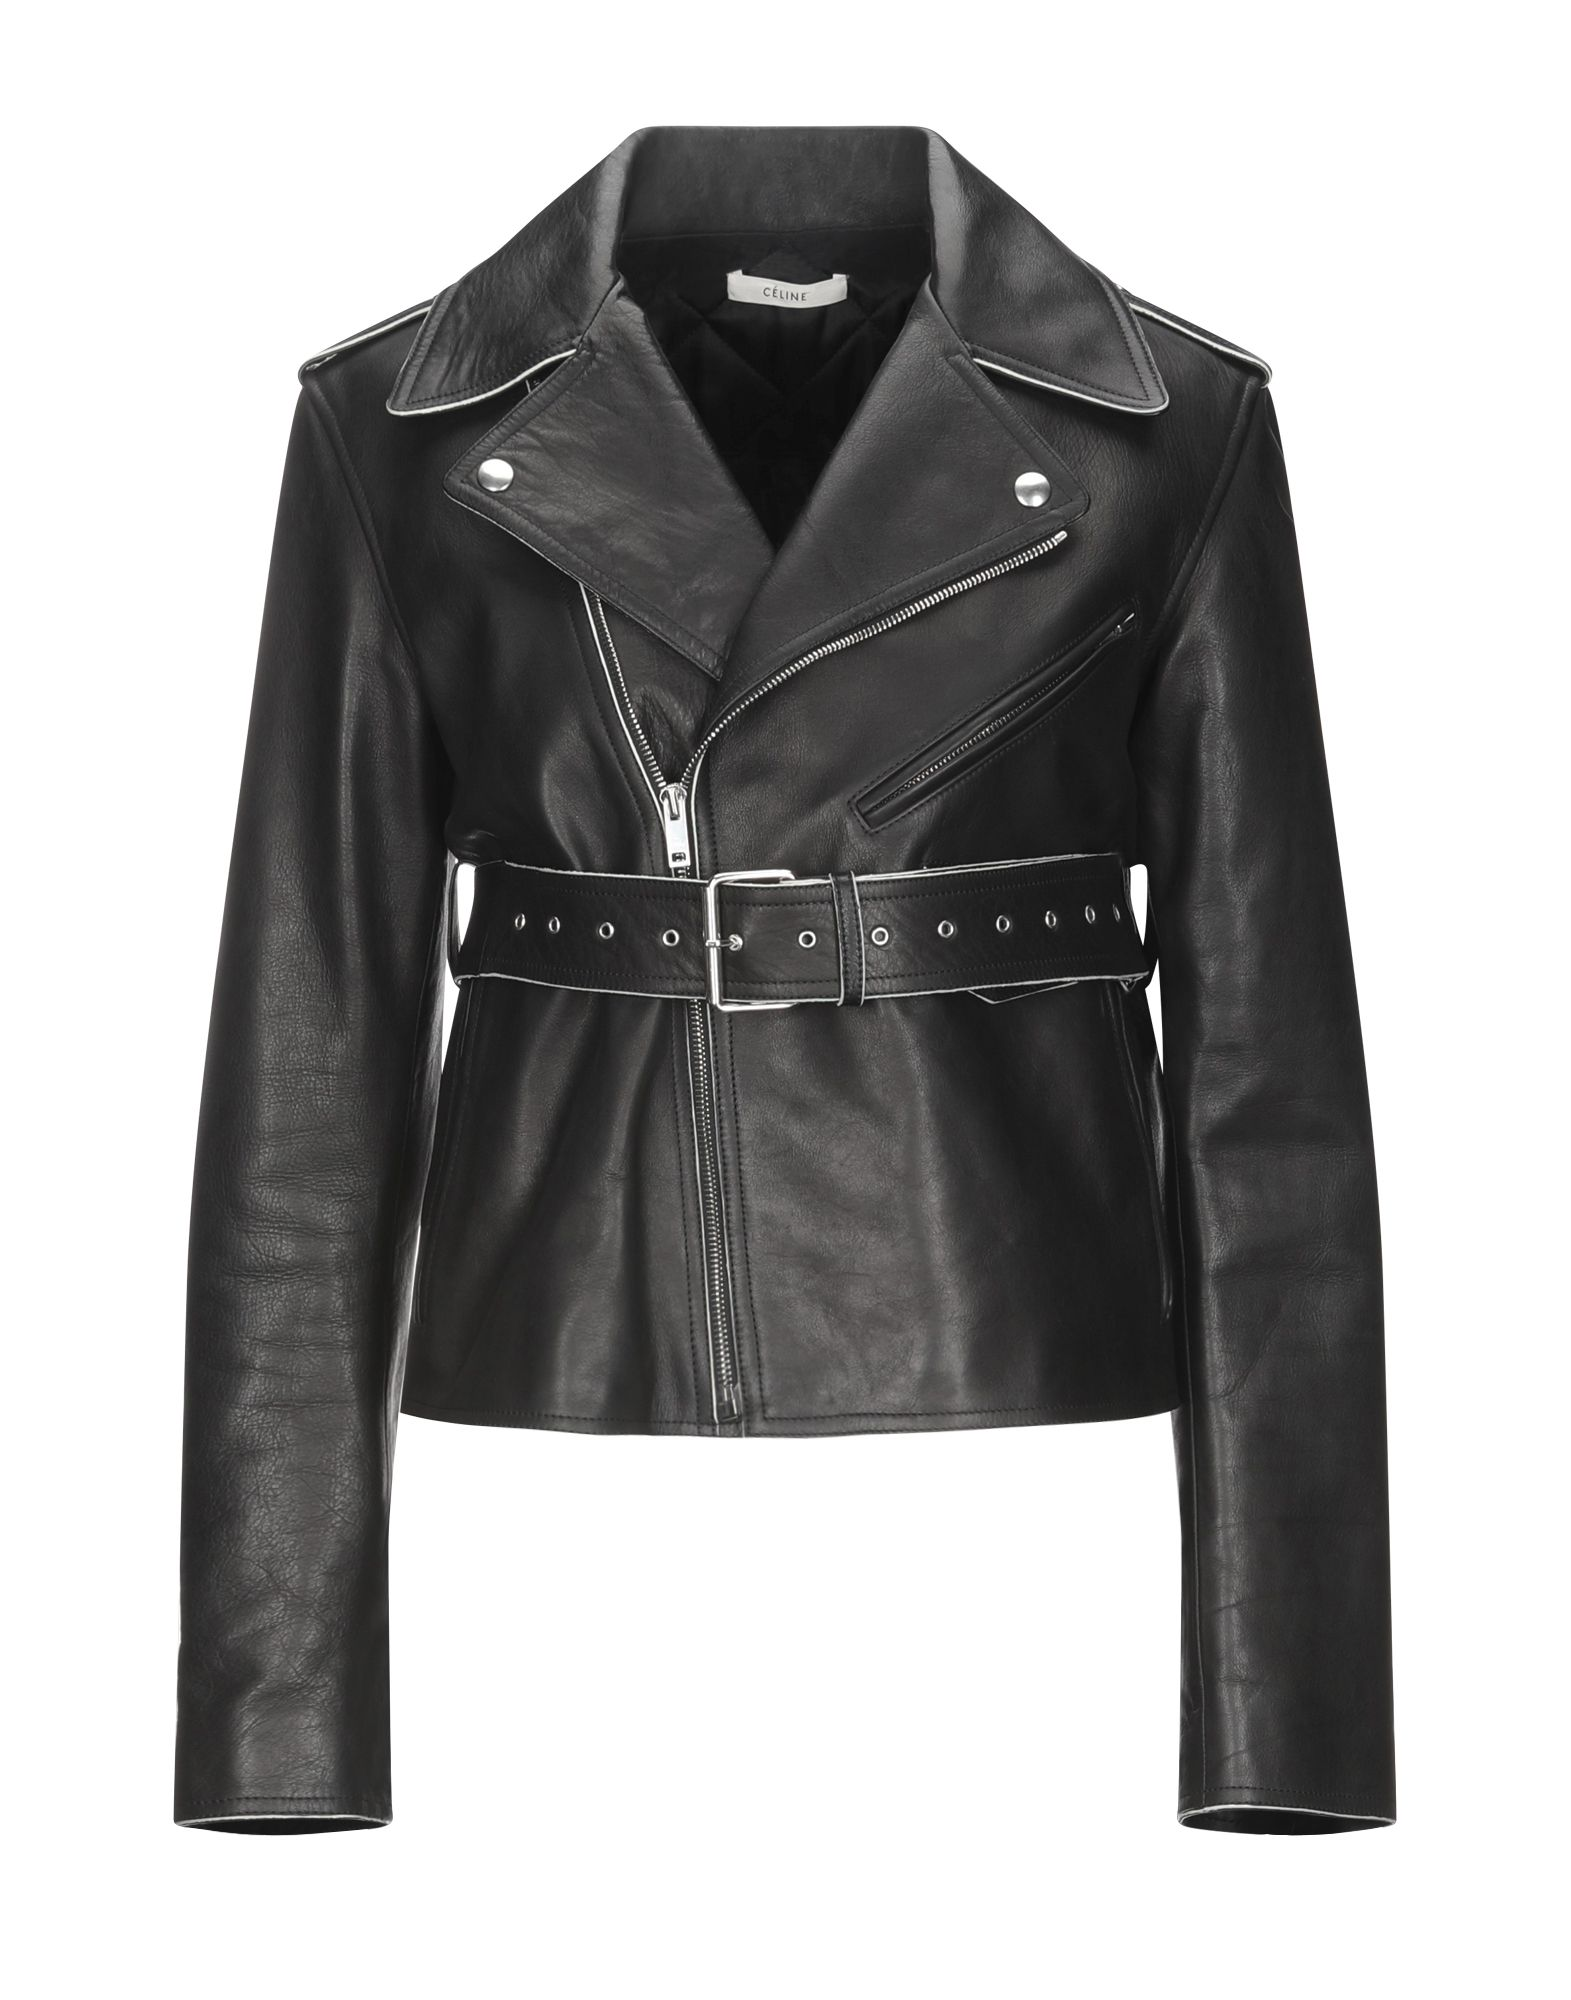 leather, belt, solid color, classic neckline, single-breasted, zip, multipockets, long sleeves, line